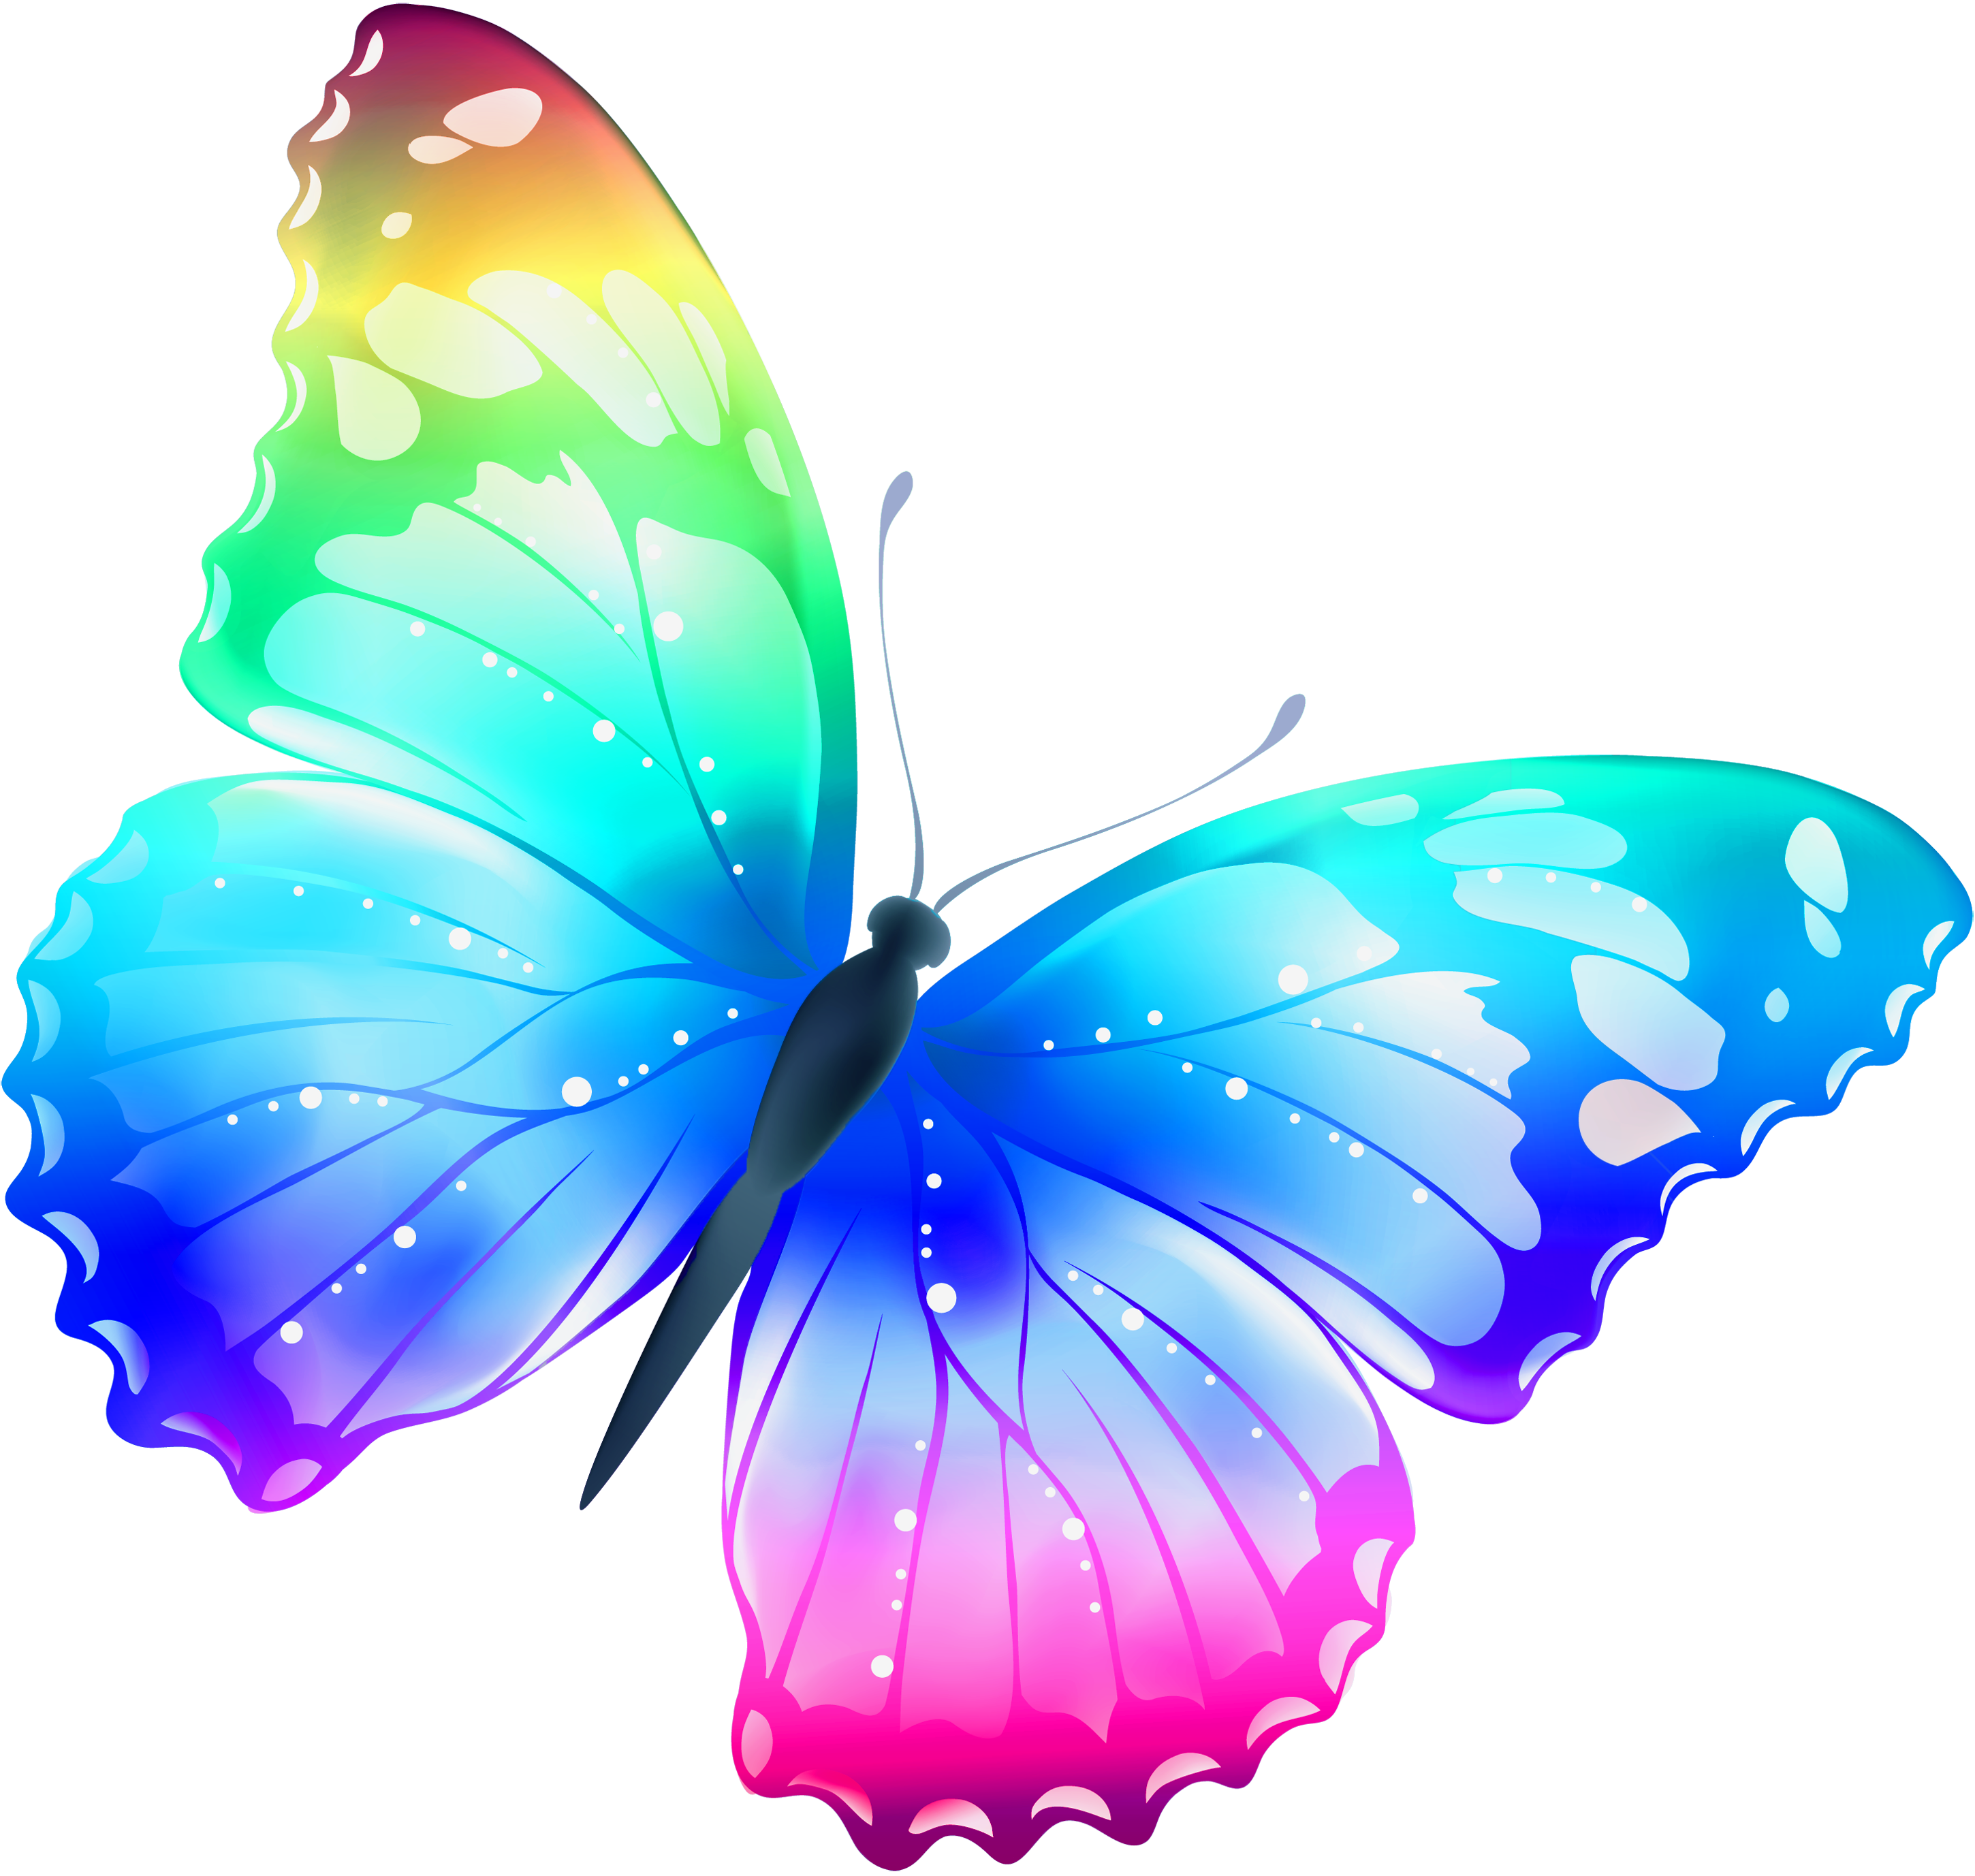 Large resolution image clipart no image available icon jpg free library 89+ Butterfly Clipart Free | ClipartLook jpg free library